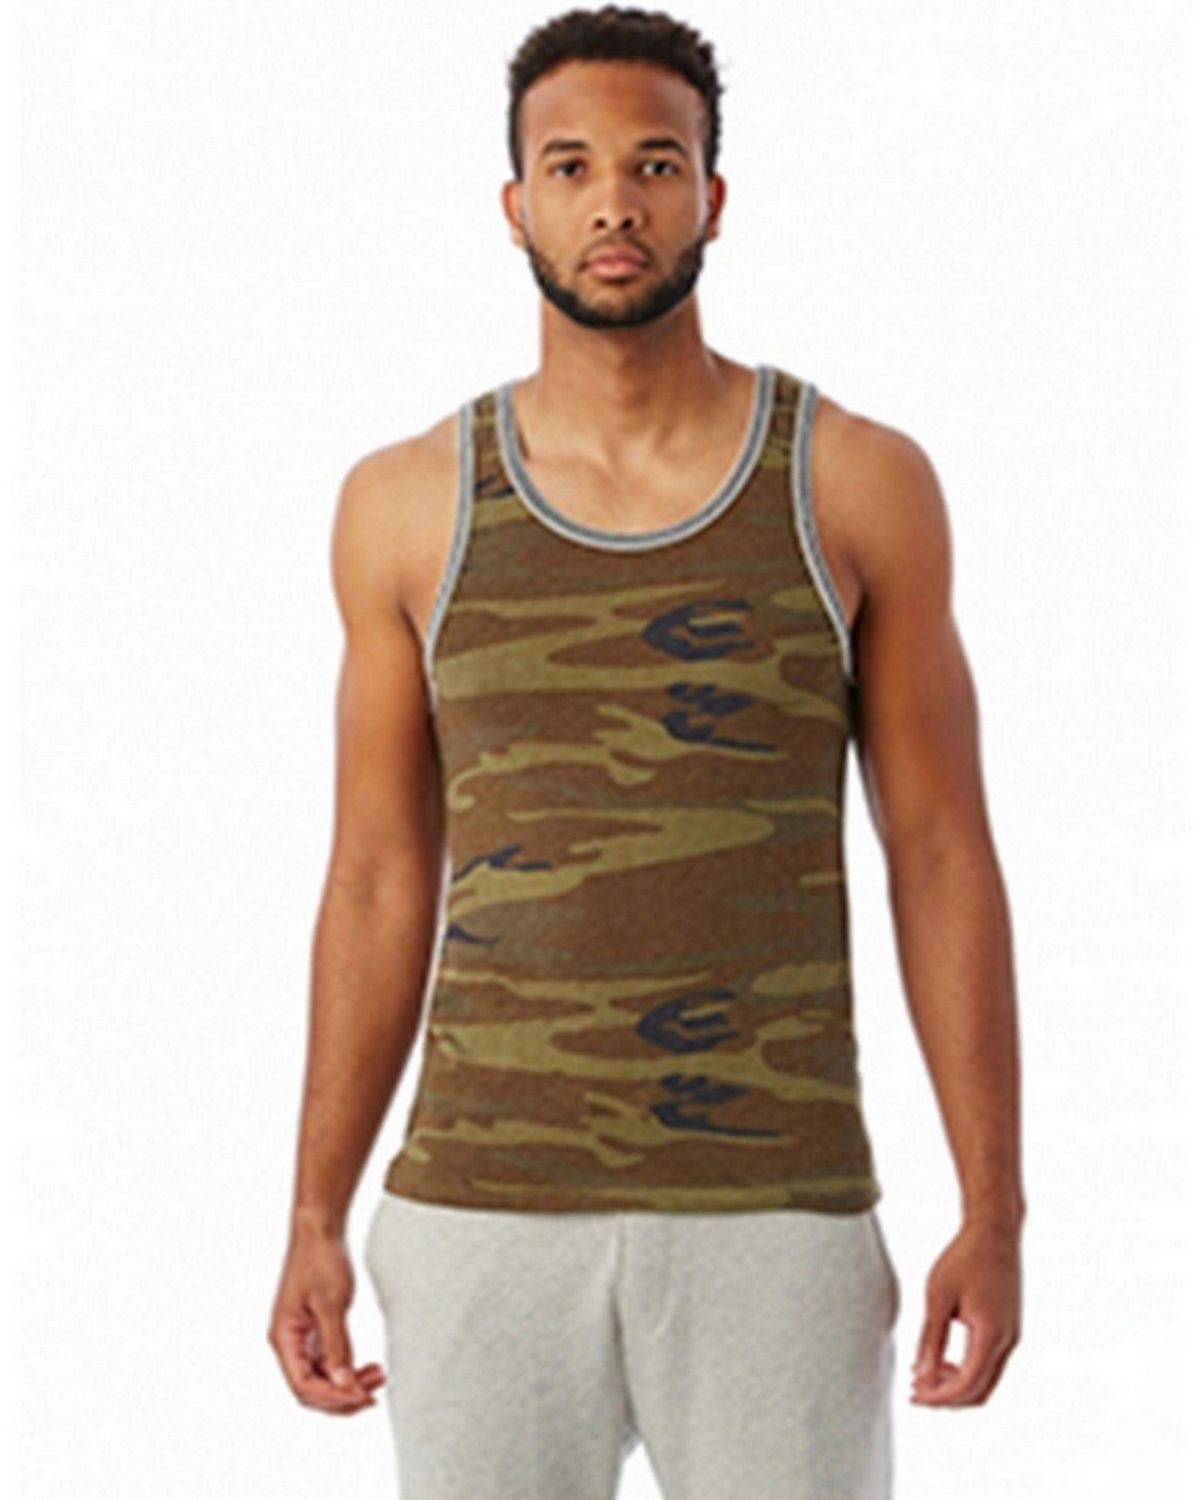 Alternative 22060E1 Double Ringer Tank - E Glc Blu/ E Gry - S 22060E1